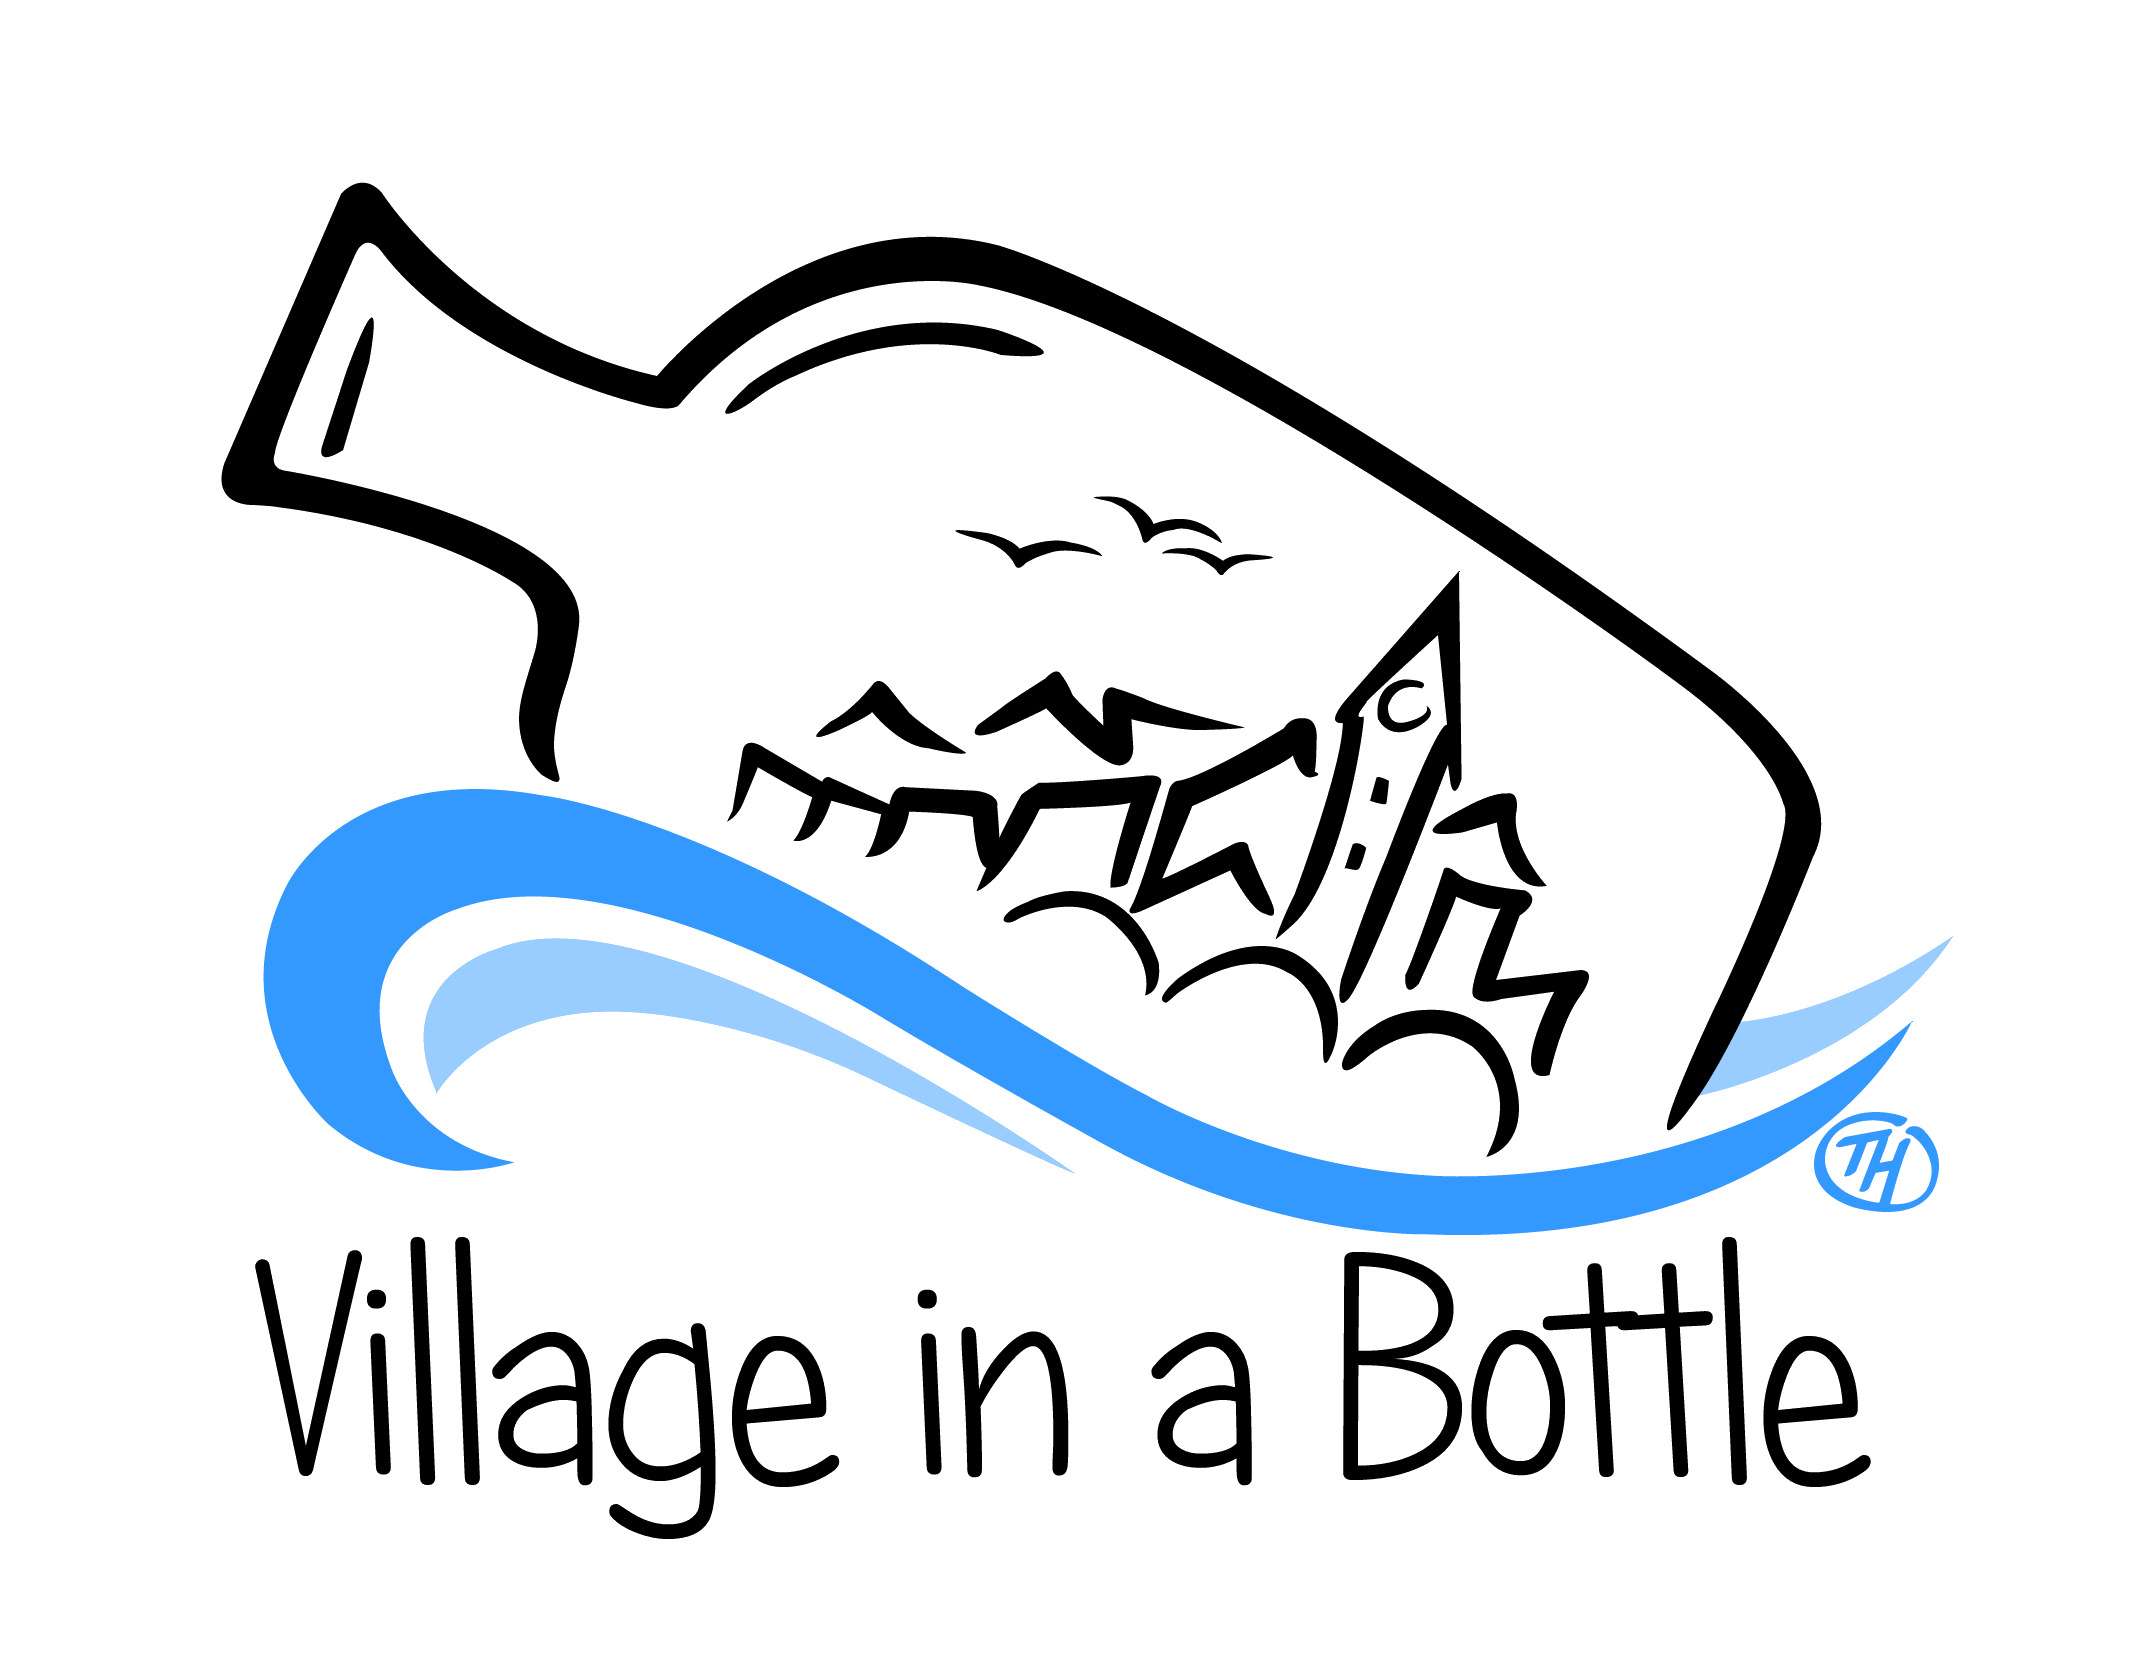 Village in a Bottle